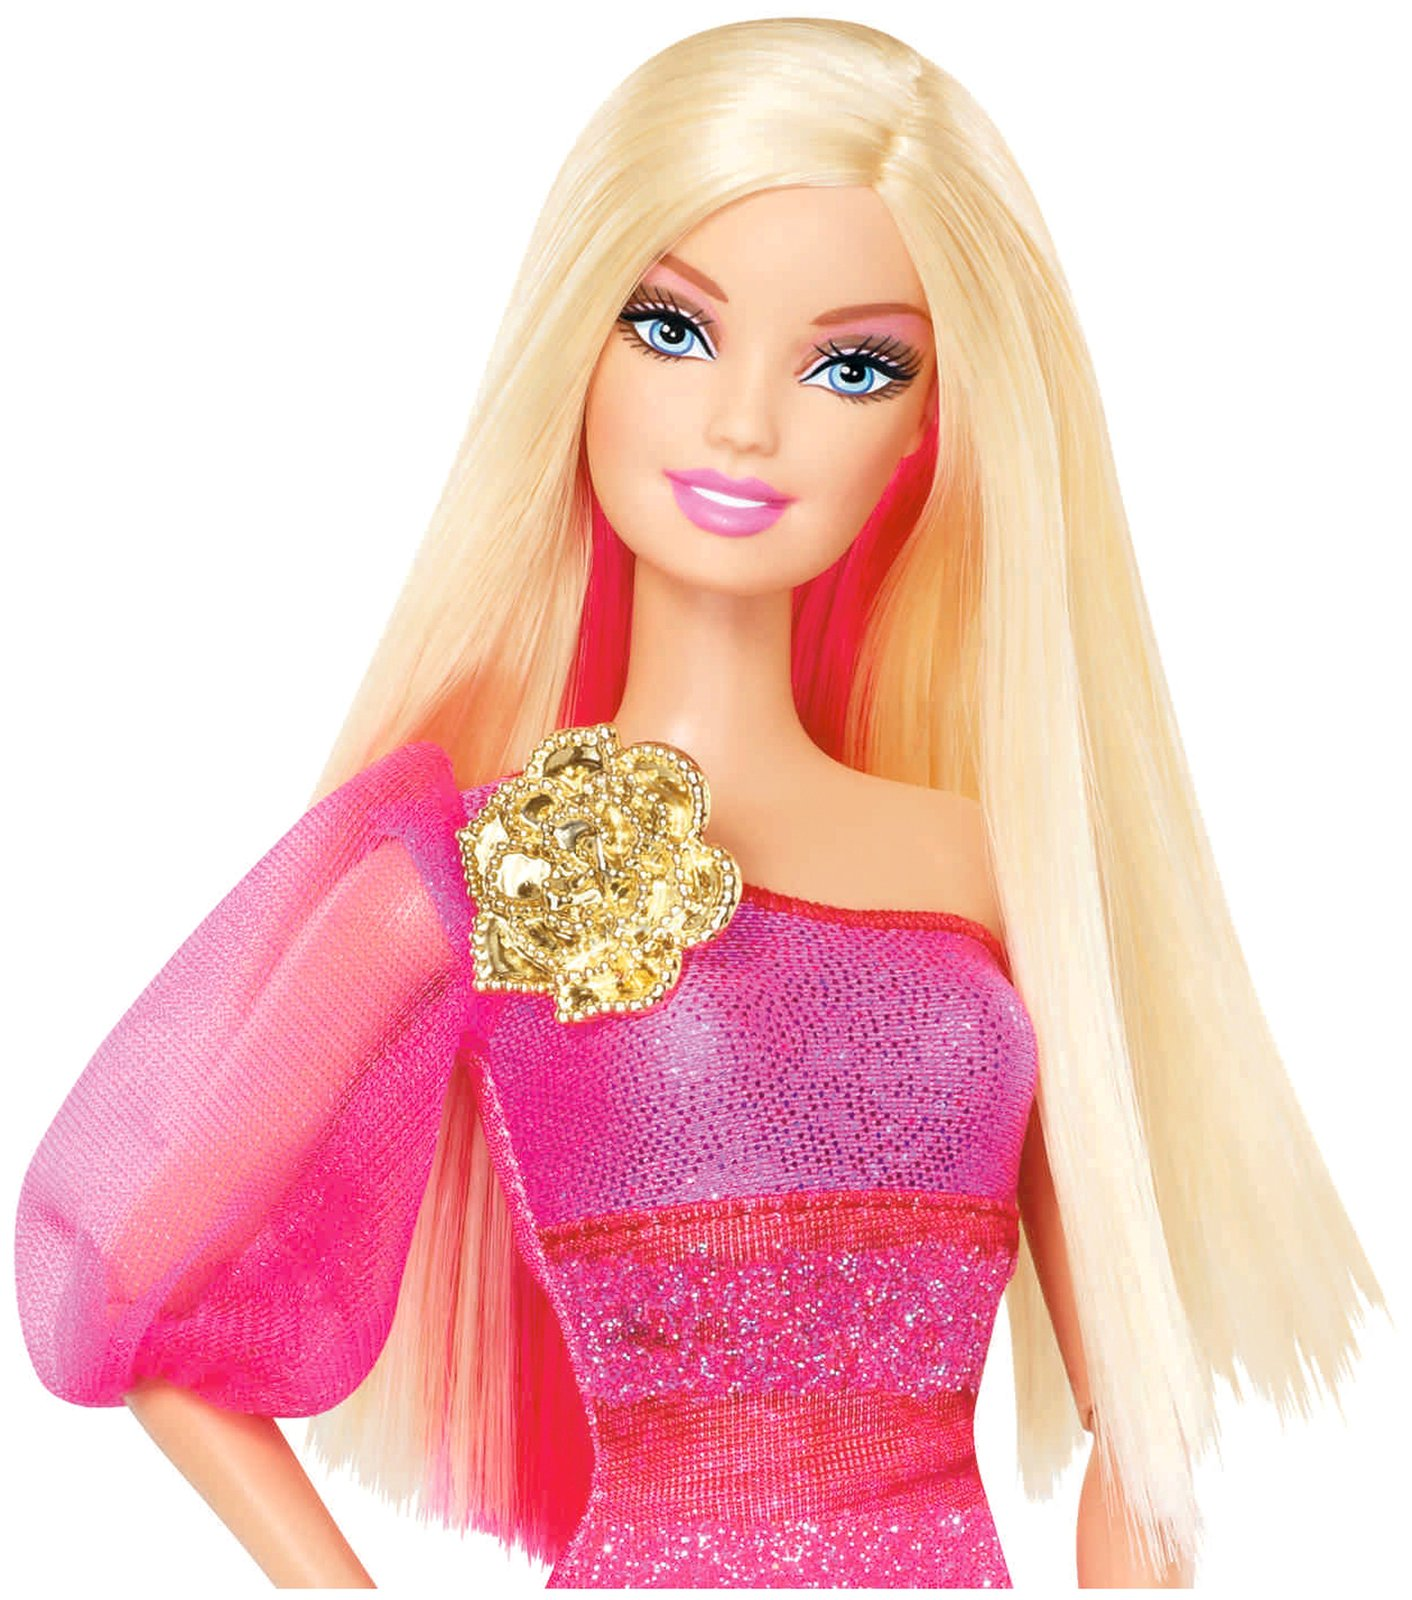 Barbie doll hd wallpapers free download - Barbie doll wallpaper free download ...